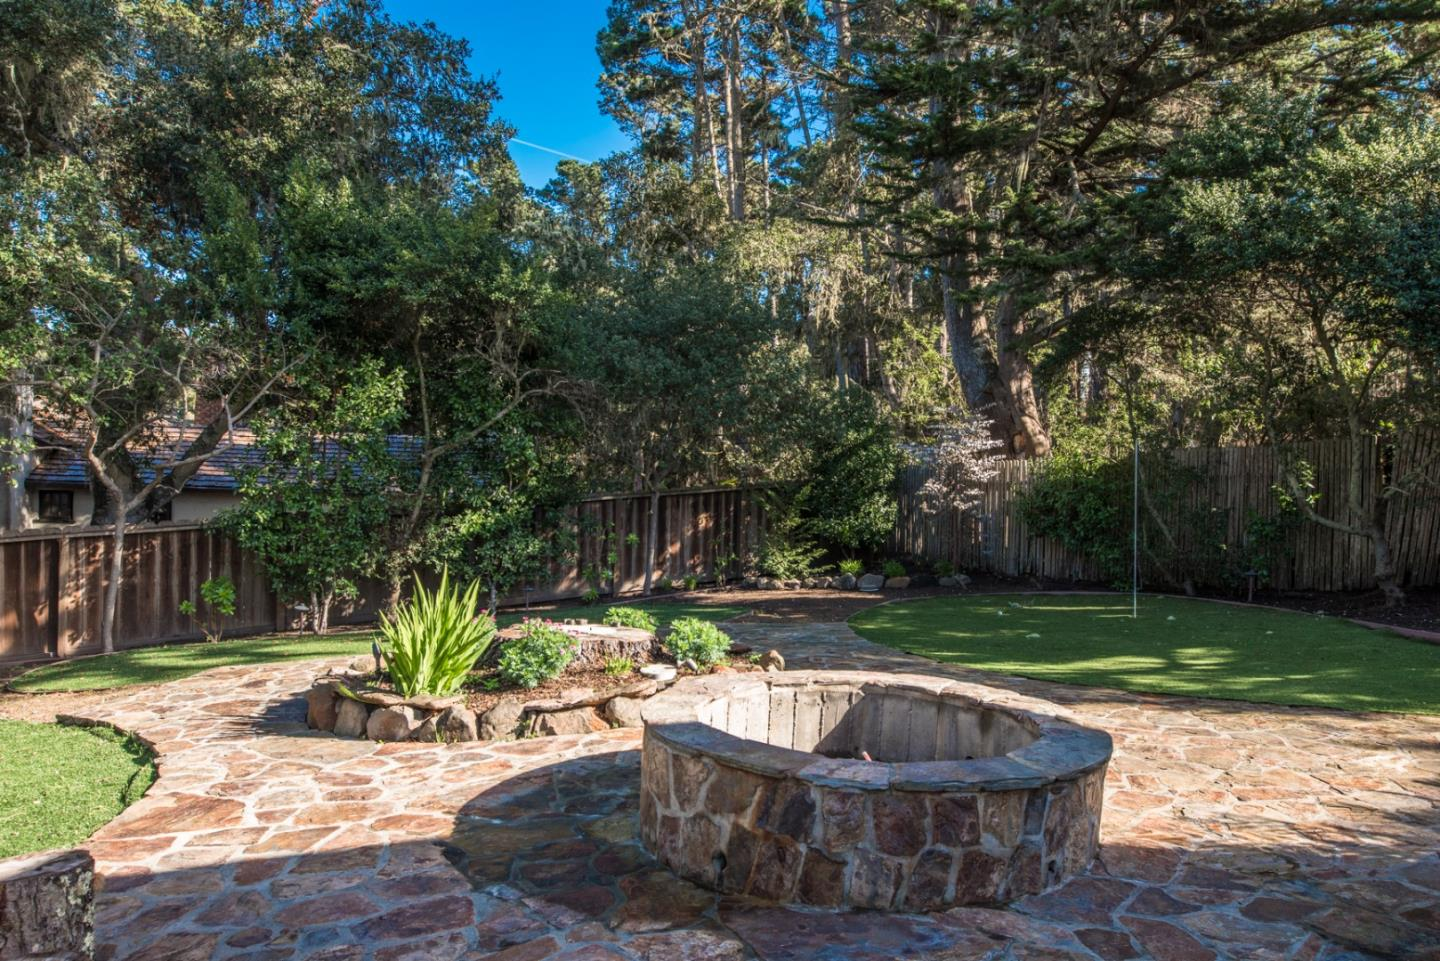 1289 Adobe Lane Pacific Grove, CA 93950 - MLS #: ML81690171